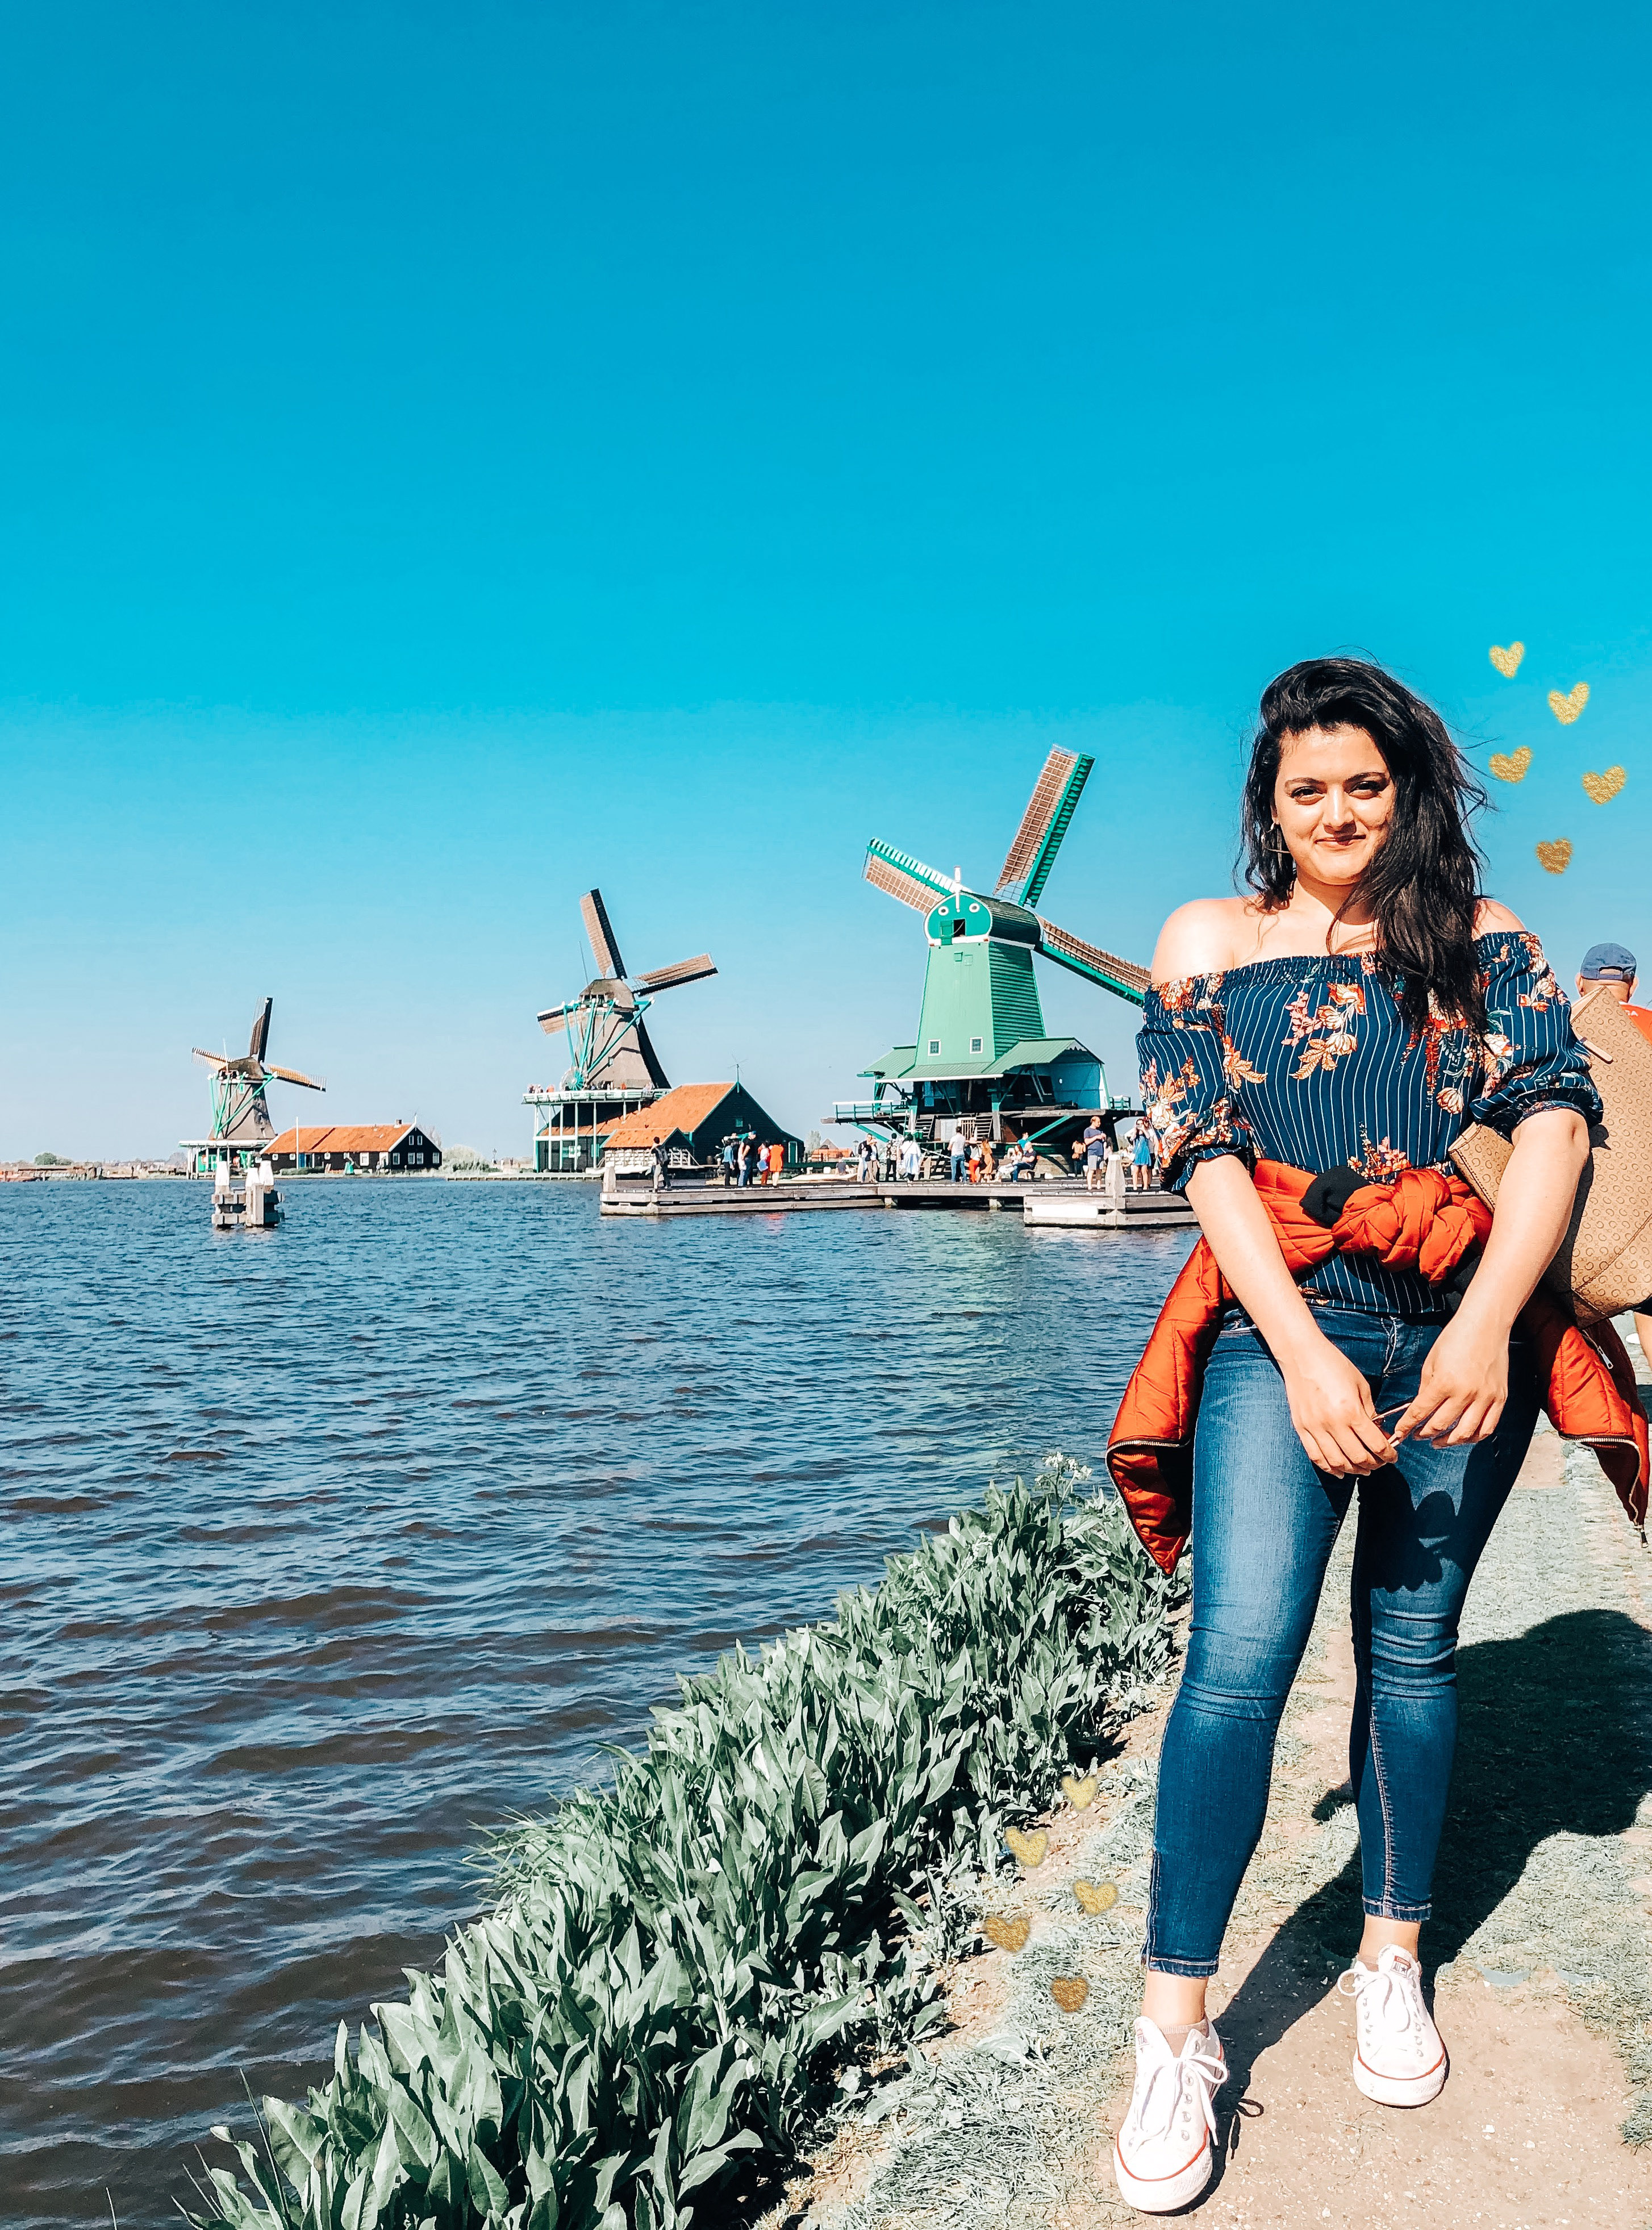 Windmills And Clogs: Travel Guide To Zaanse Schans